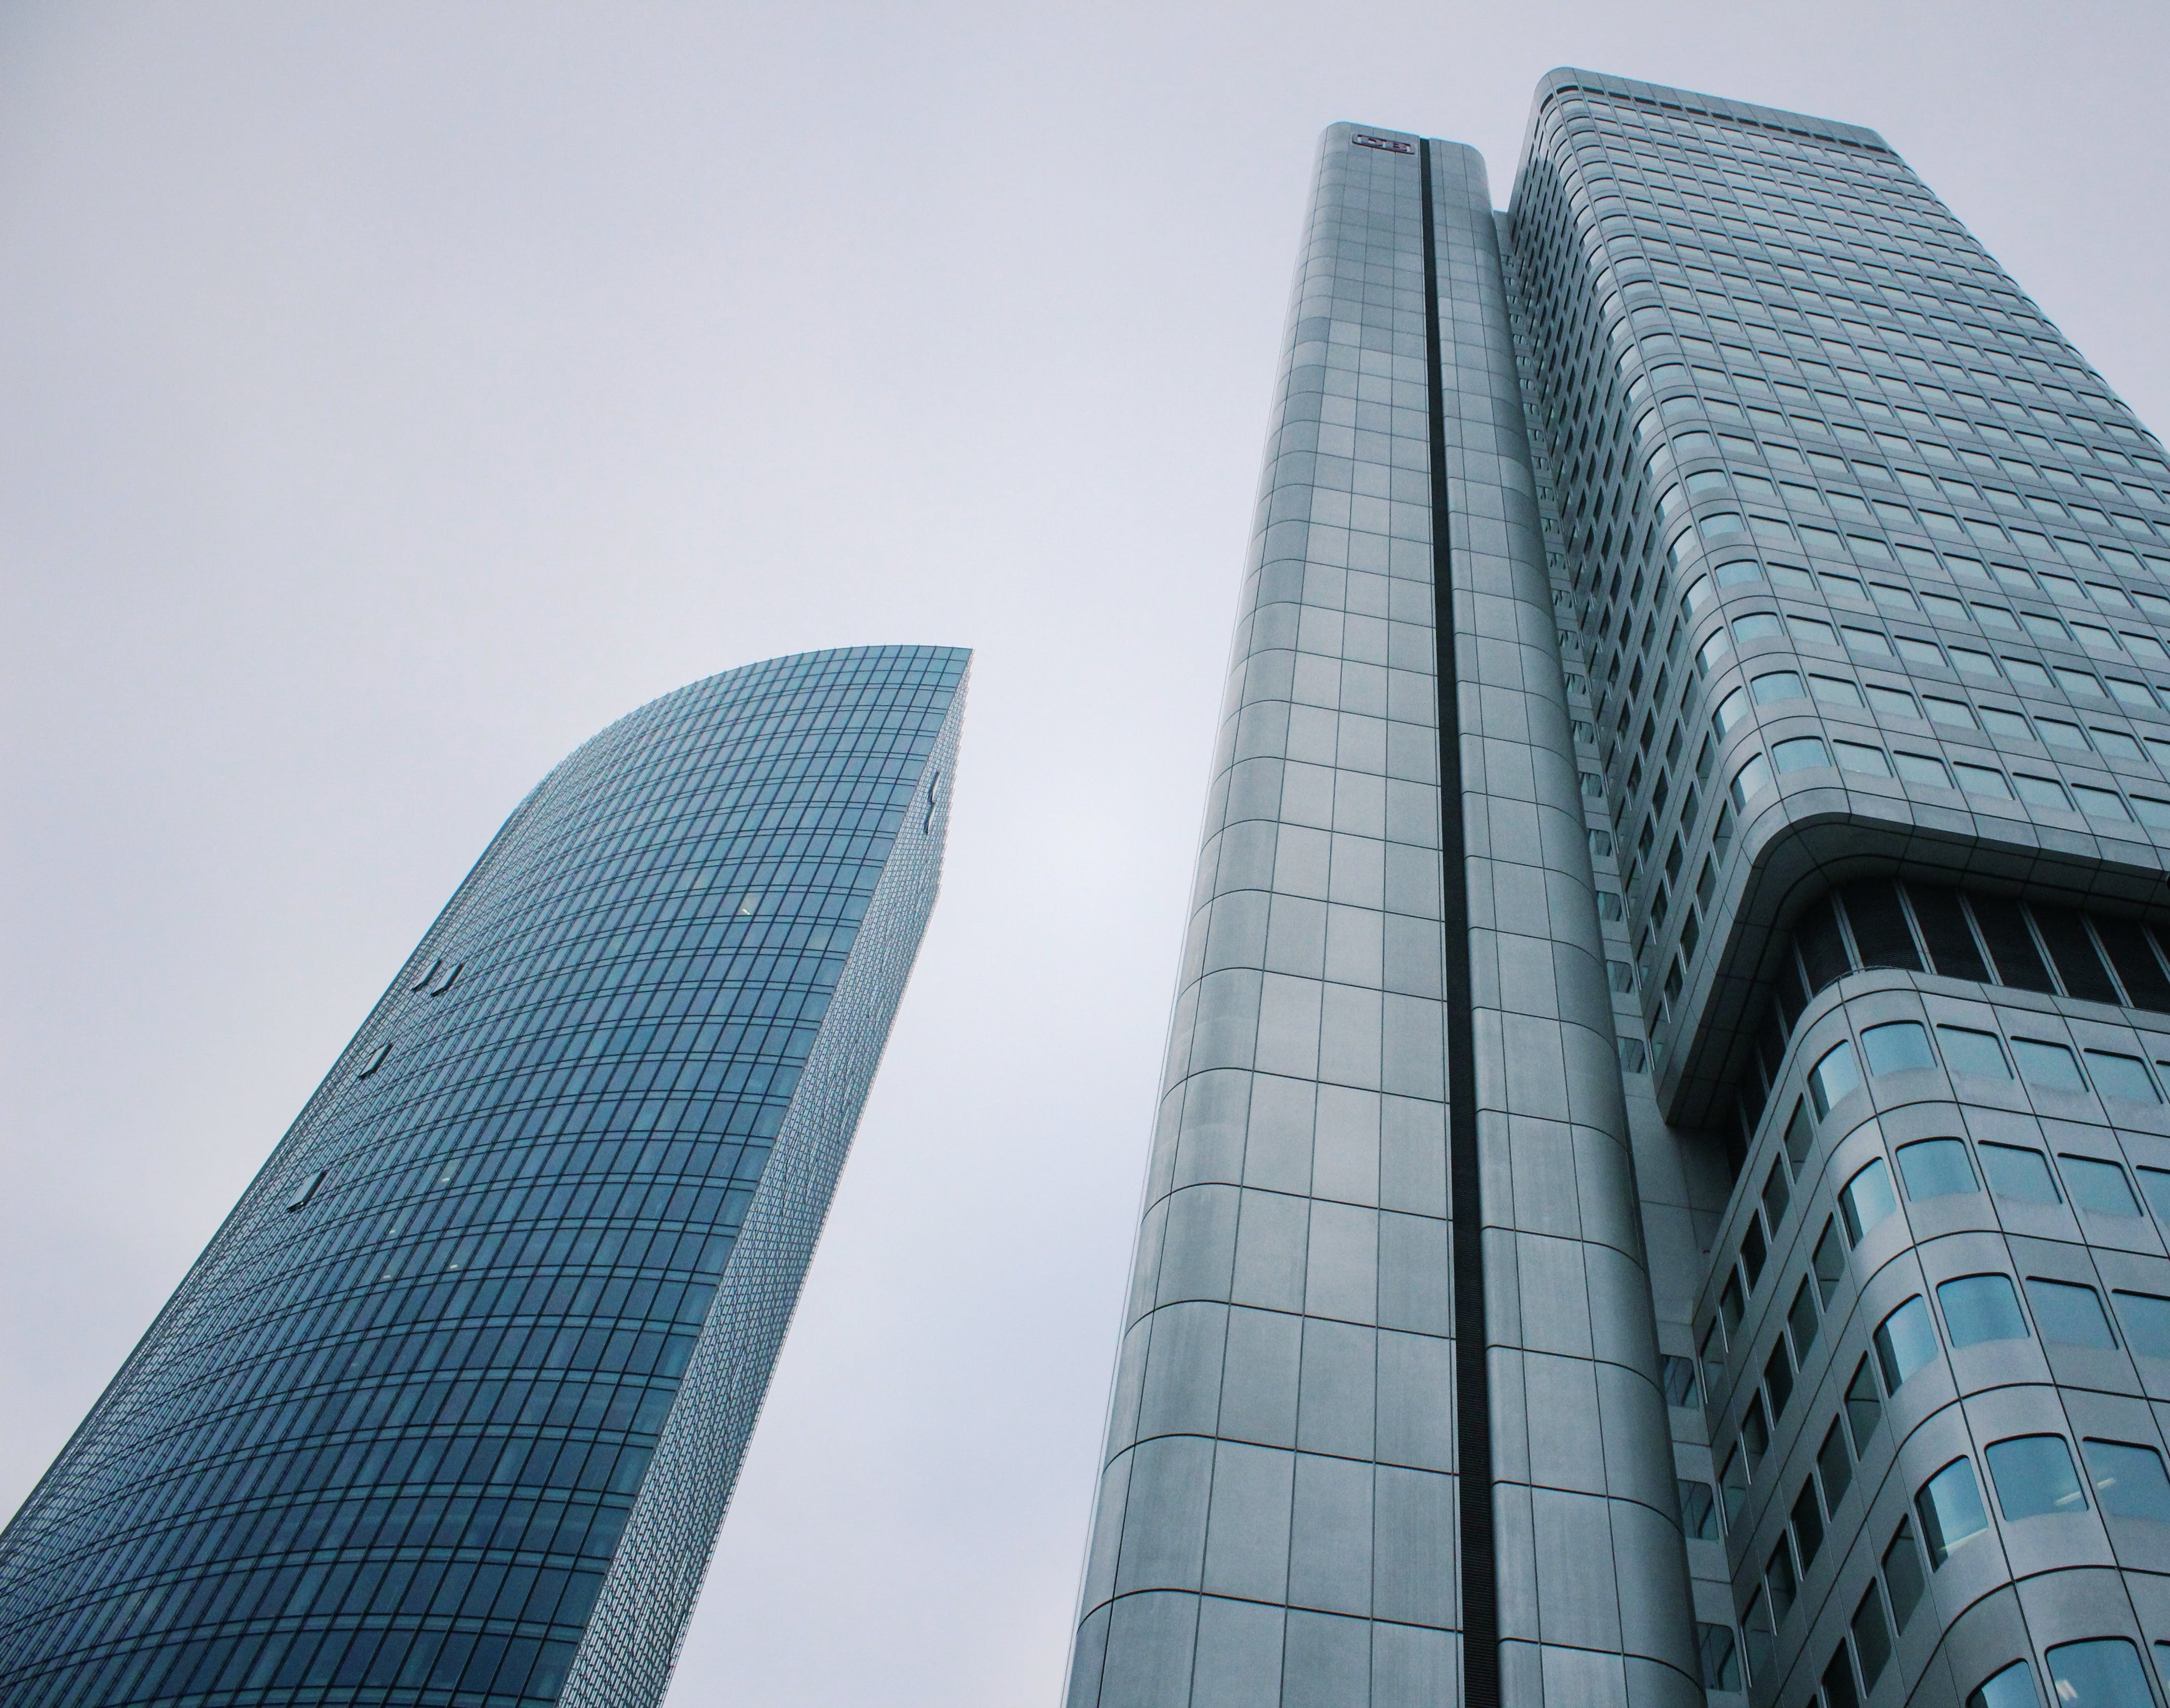 Low-angle Photography of Concrete Buildings